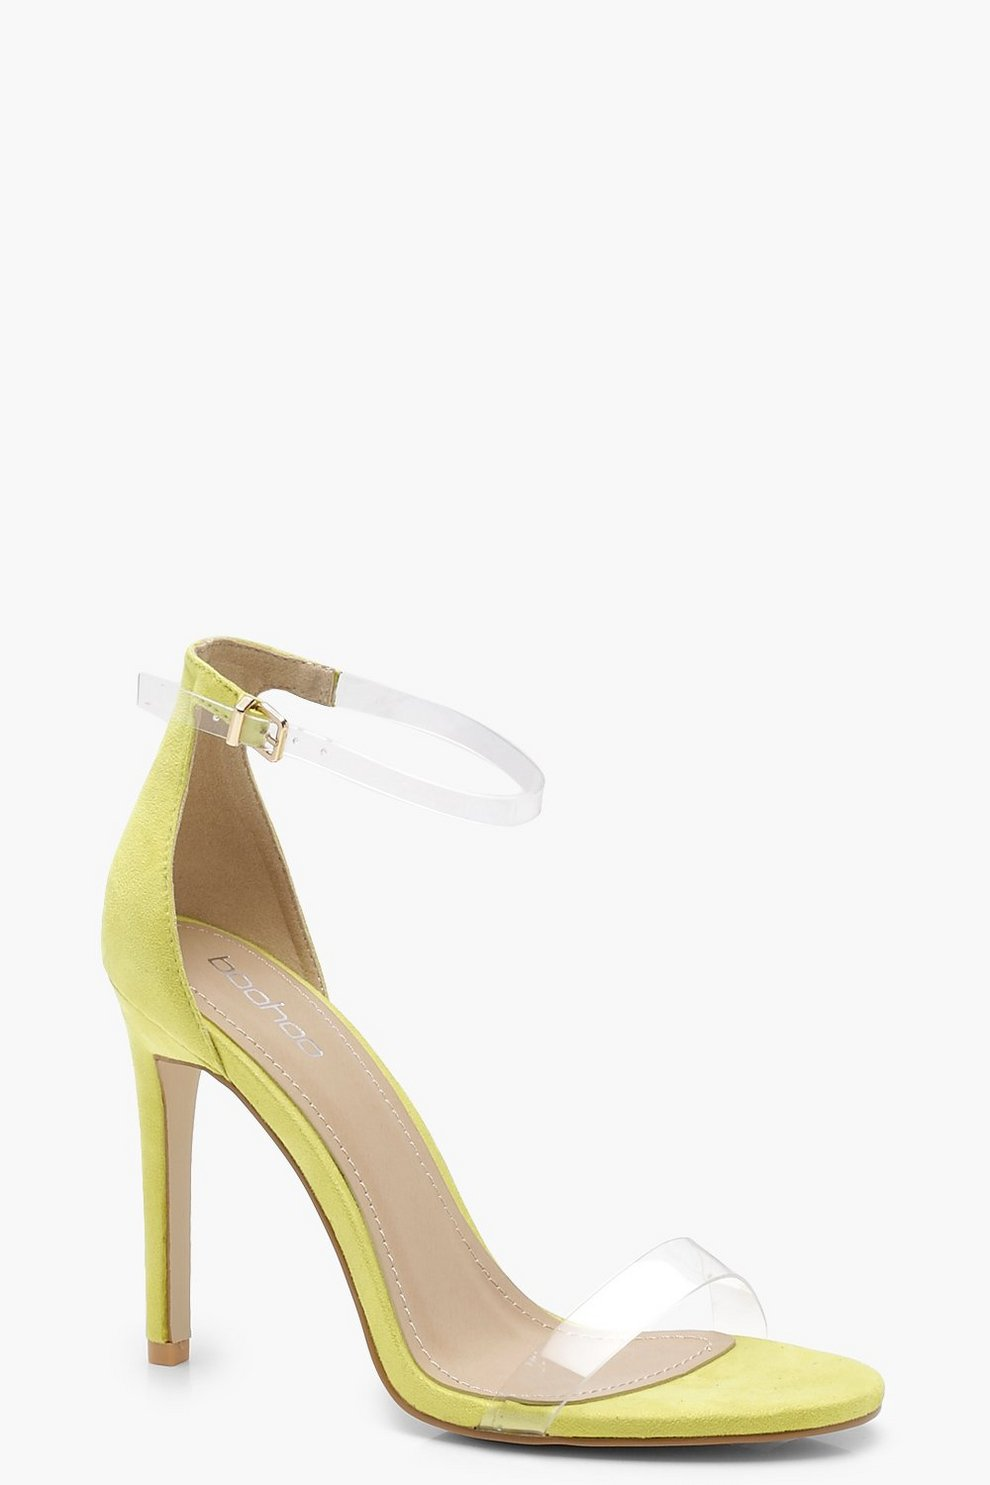 Olivia Clear Band 2 Part Heels eJXn8rzU3